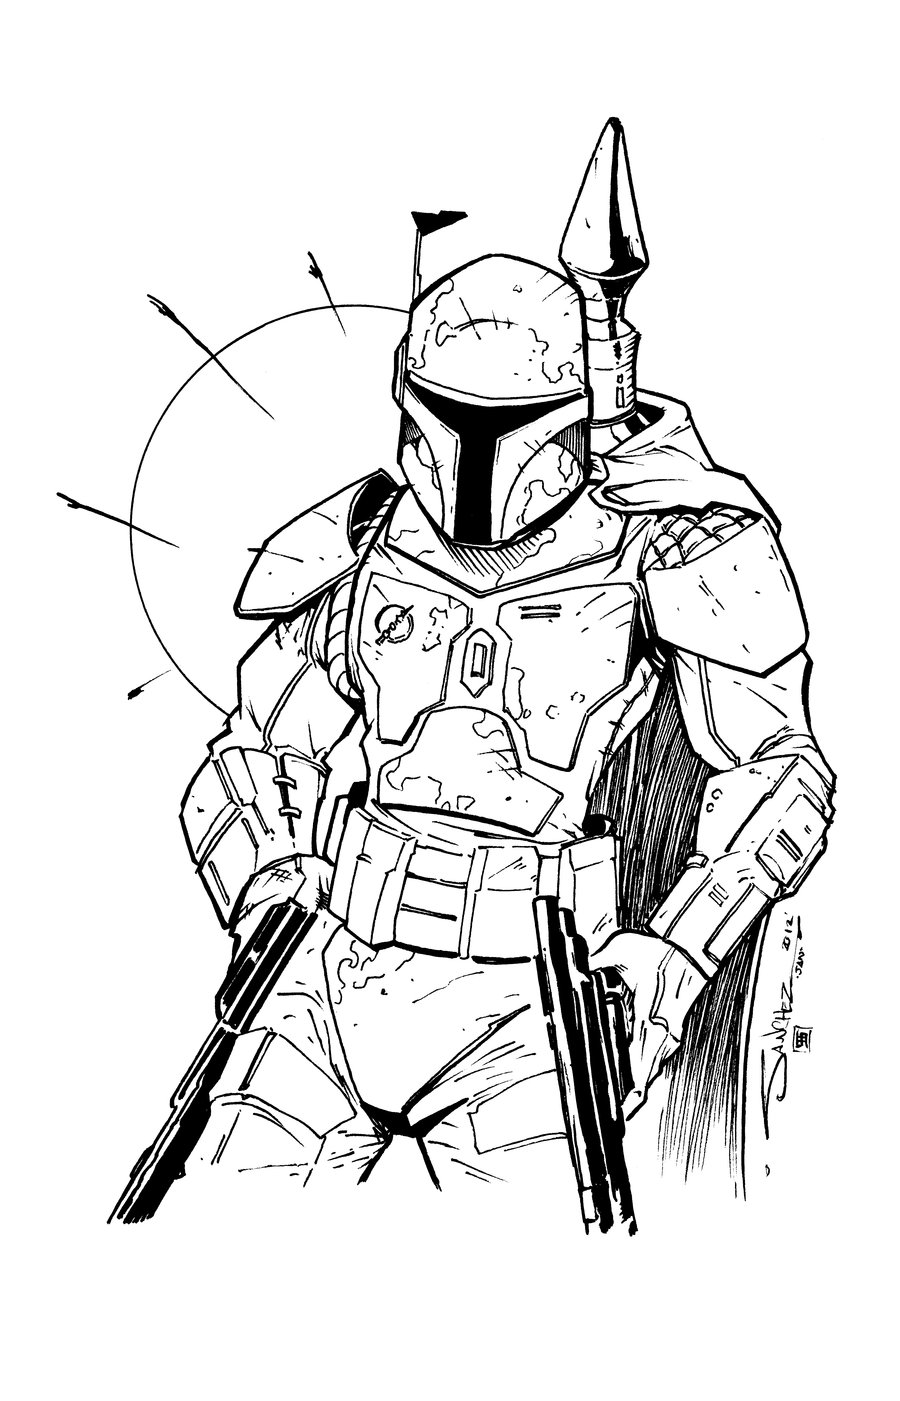 lego star wars boba fett coloring pages minecraft boba fett page coloring pages coloring lego fett wars boba pages star